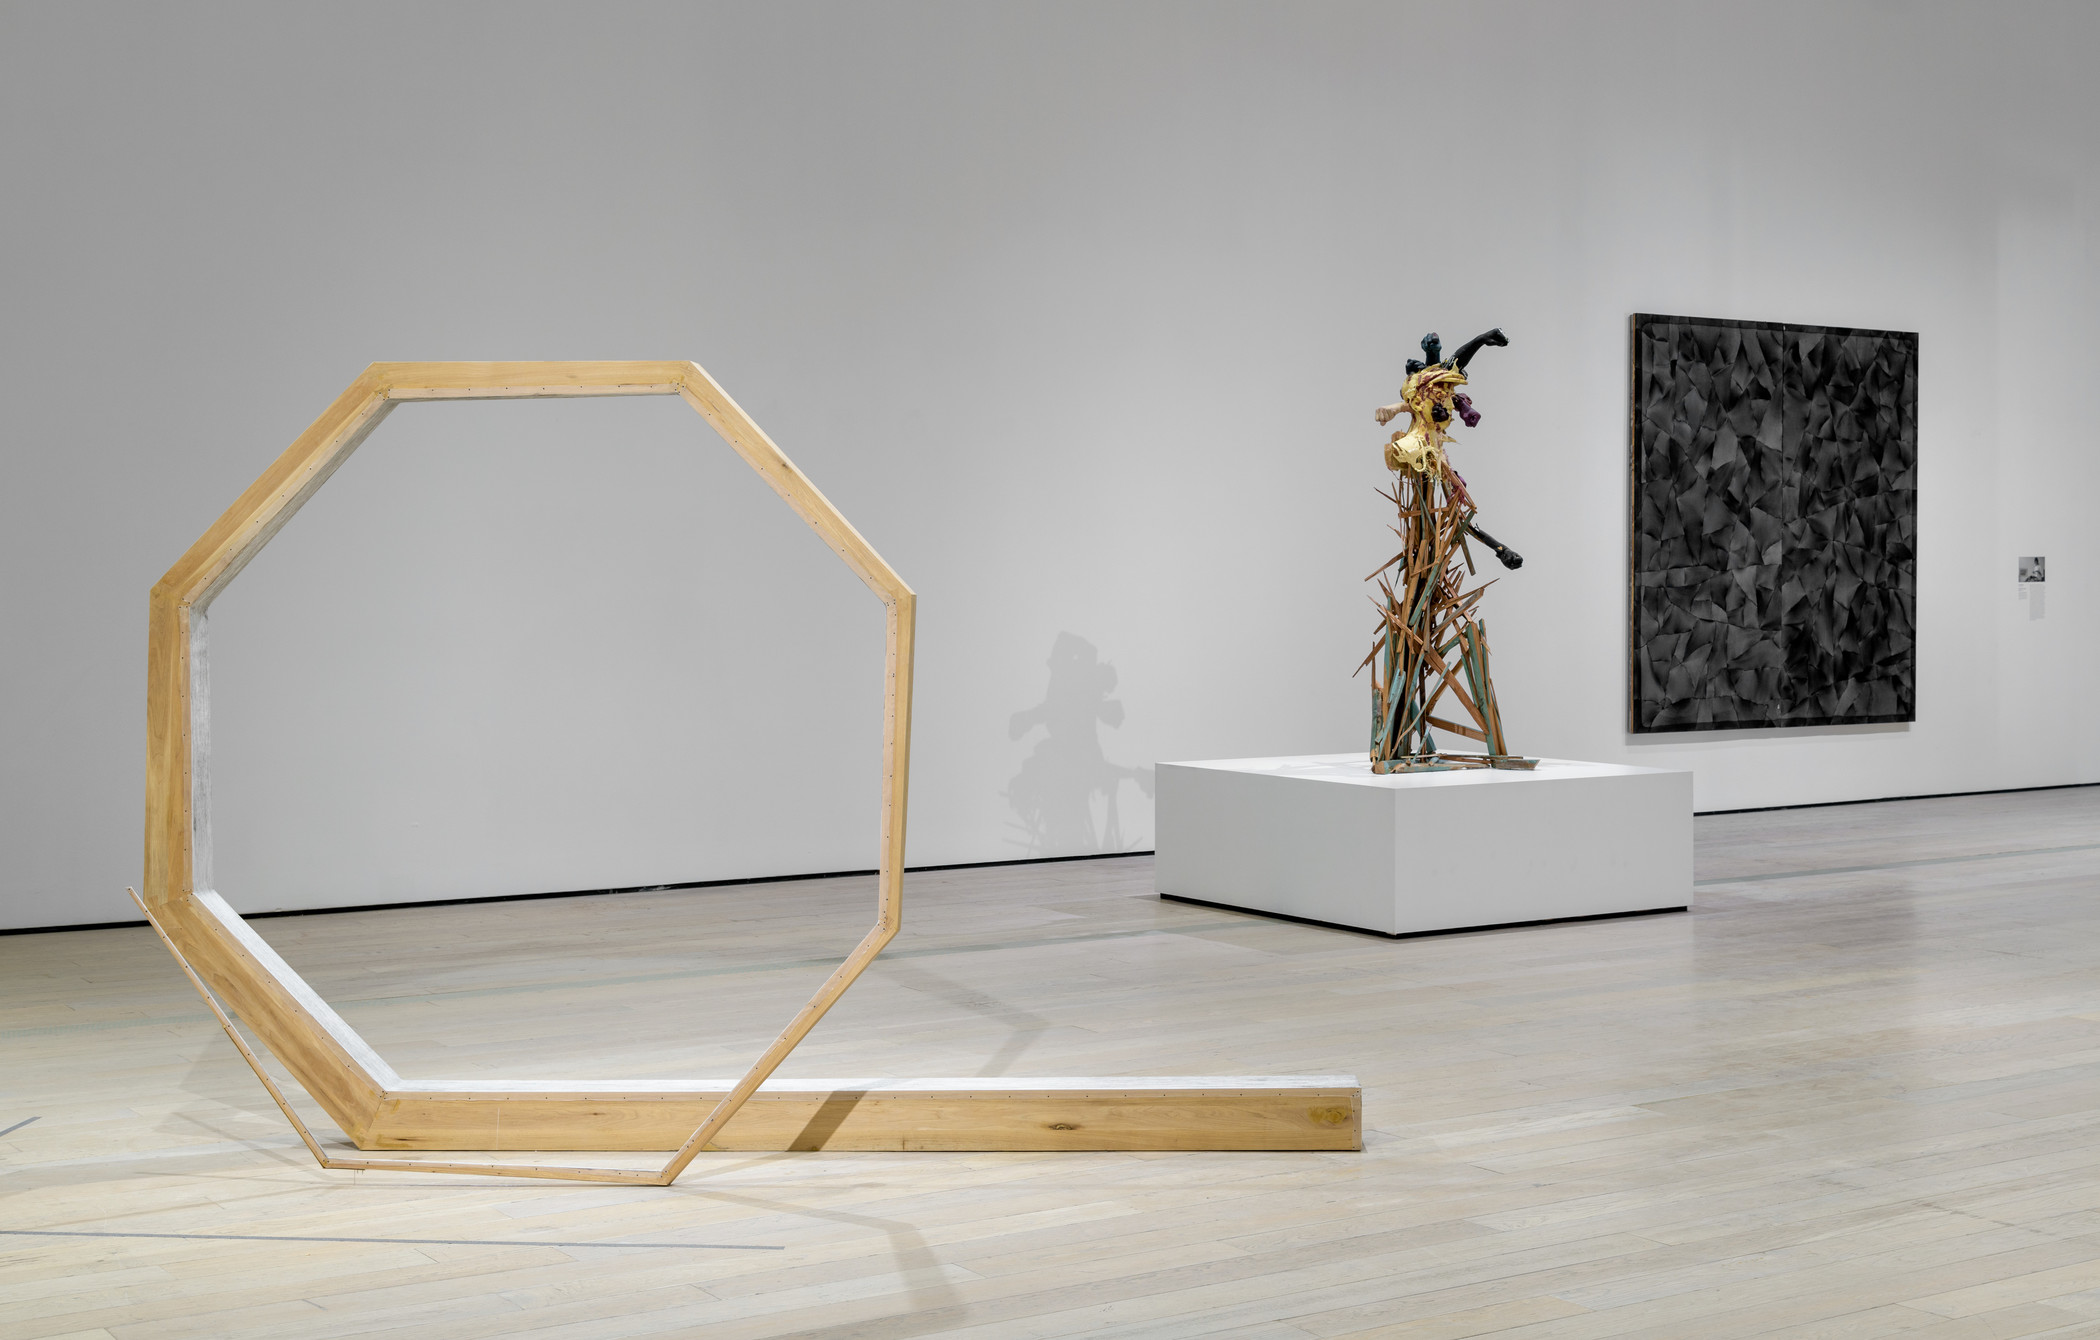 Installation photograph, The Allure of Matter: Material Art from China, at the Los Angeles County Museum of Art, June 2, 2019–January 5, 2020, photo © Museum Associates/LACMA. From left: Hu Xiaoyuan, Ant Bone IV, 2015, Collection of the artist, courtesy of Beijing Commune and the artist; Jin Shan, Mistaken, 2015, Collection of the artist, courtesy of the artist and BANK/MABSOCIETY; Ma Qiusha, Wonderland: Black Square, 2016, Collection of the artist, courtesy of Beijing Commune and the artist